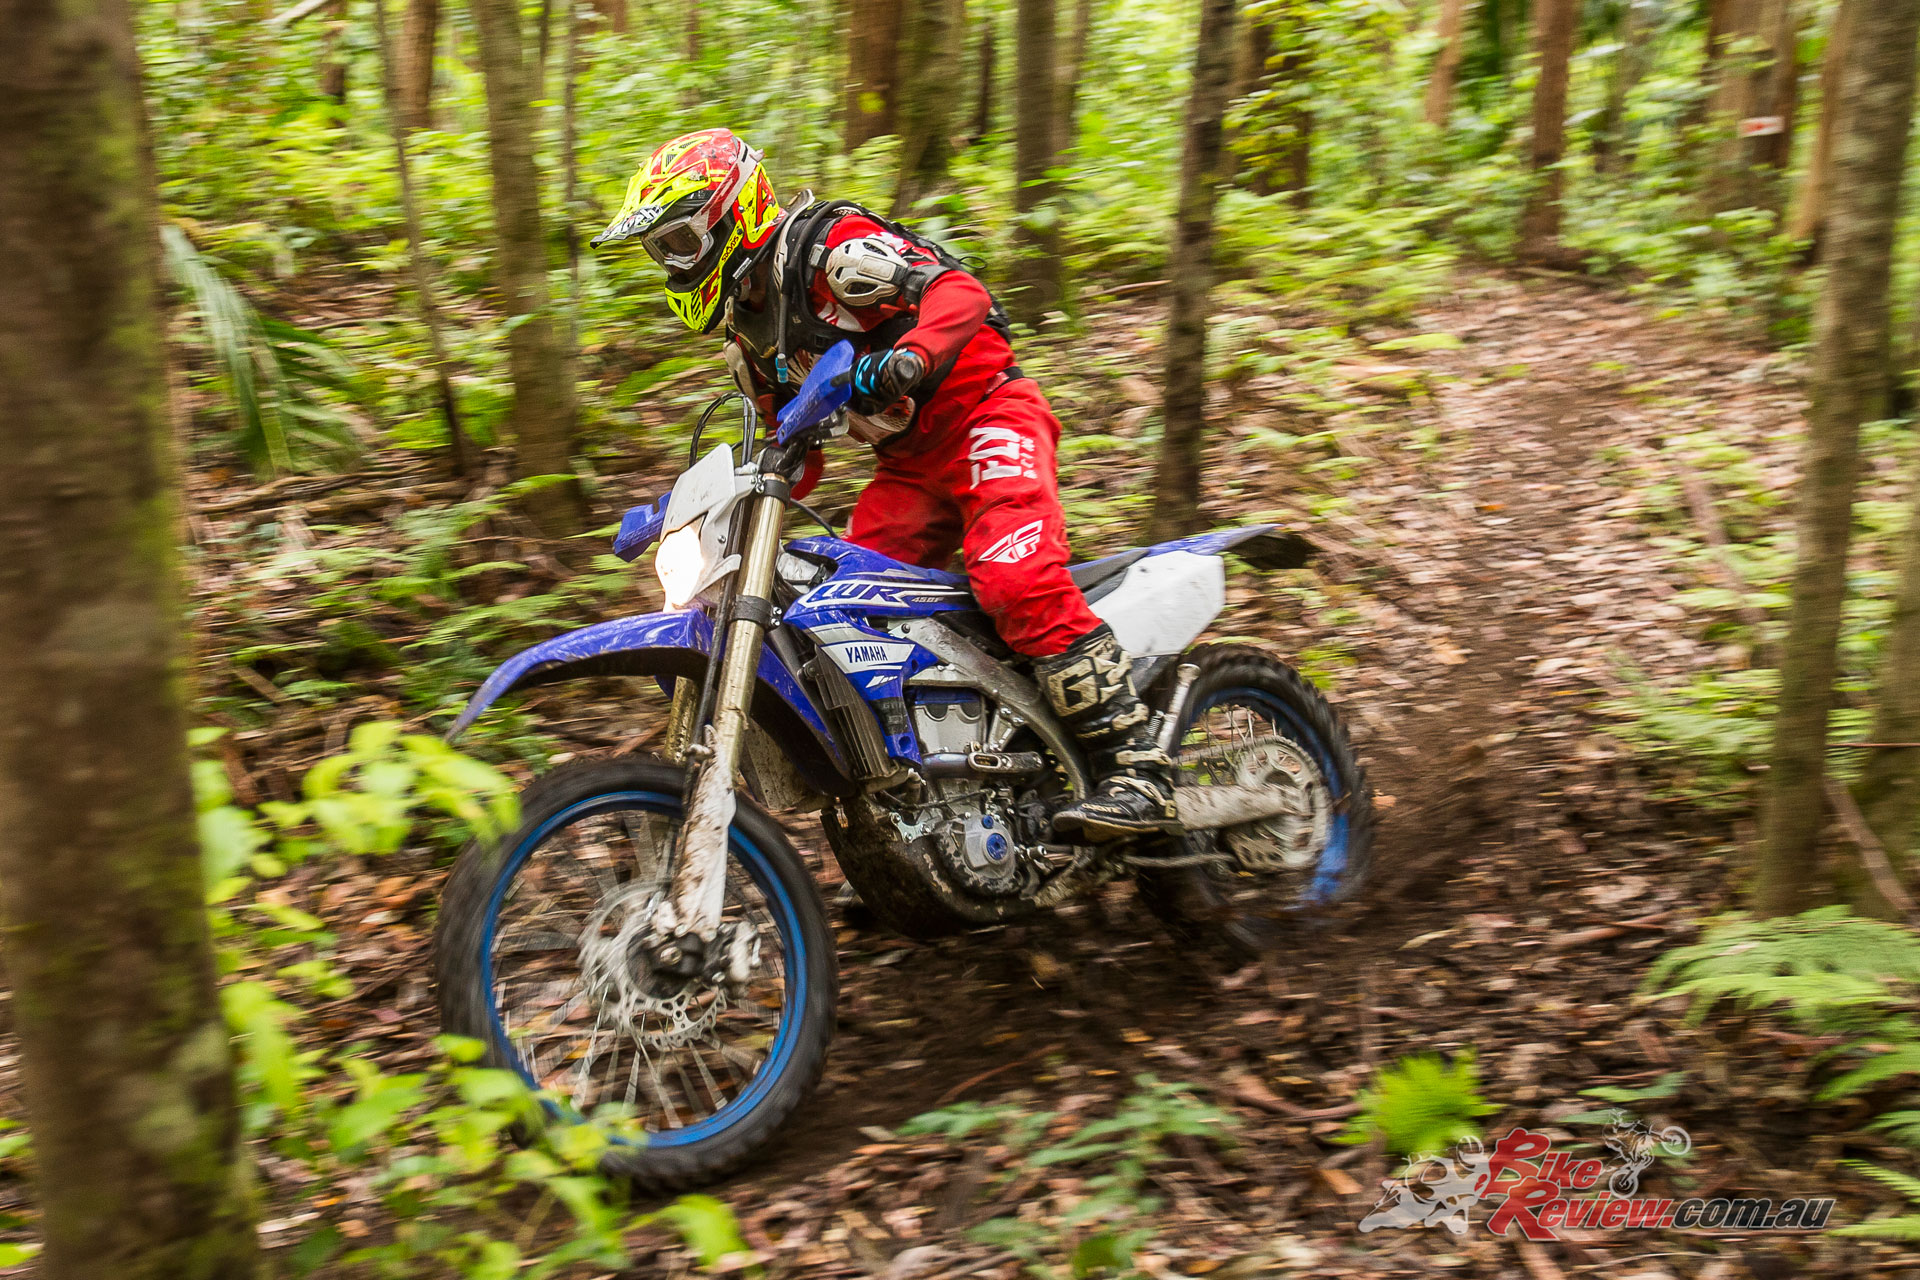 The 2019 WR450F was fantastic in the tighter single track sections